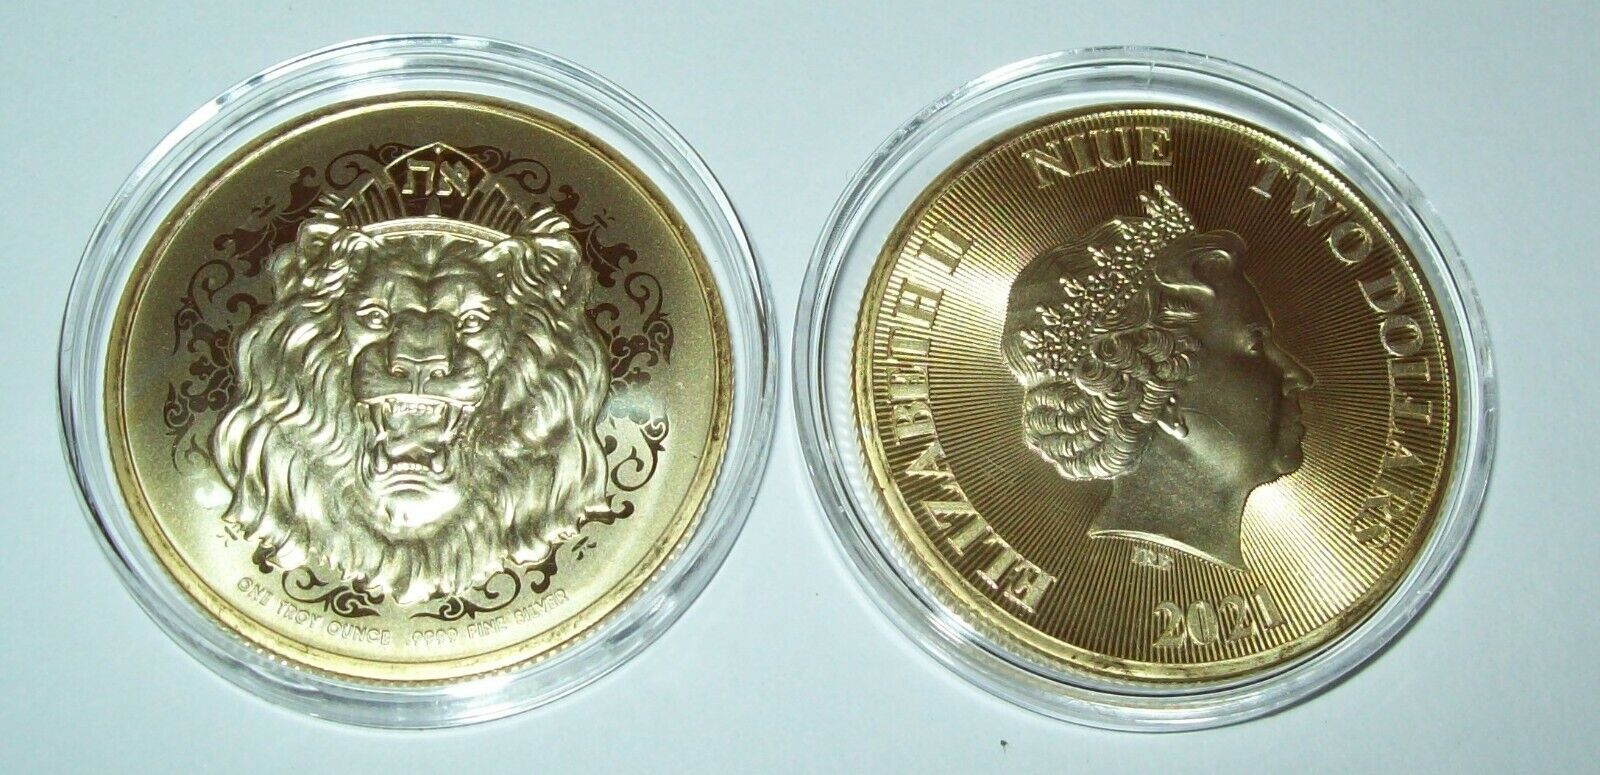 2021 Niue Roaring Lion 1 Troy Oz Silver Coin 24K Gold Gilded Two Dollar 2 - $29.11